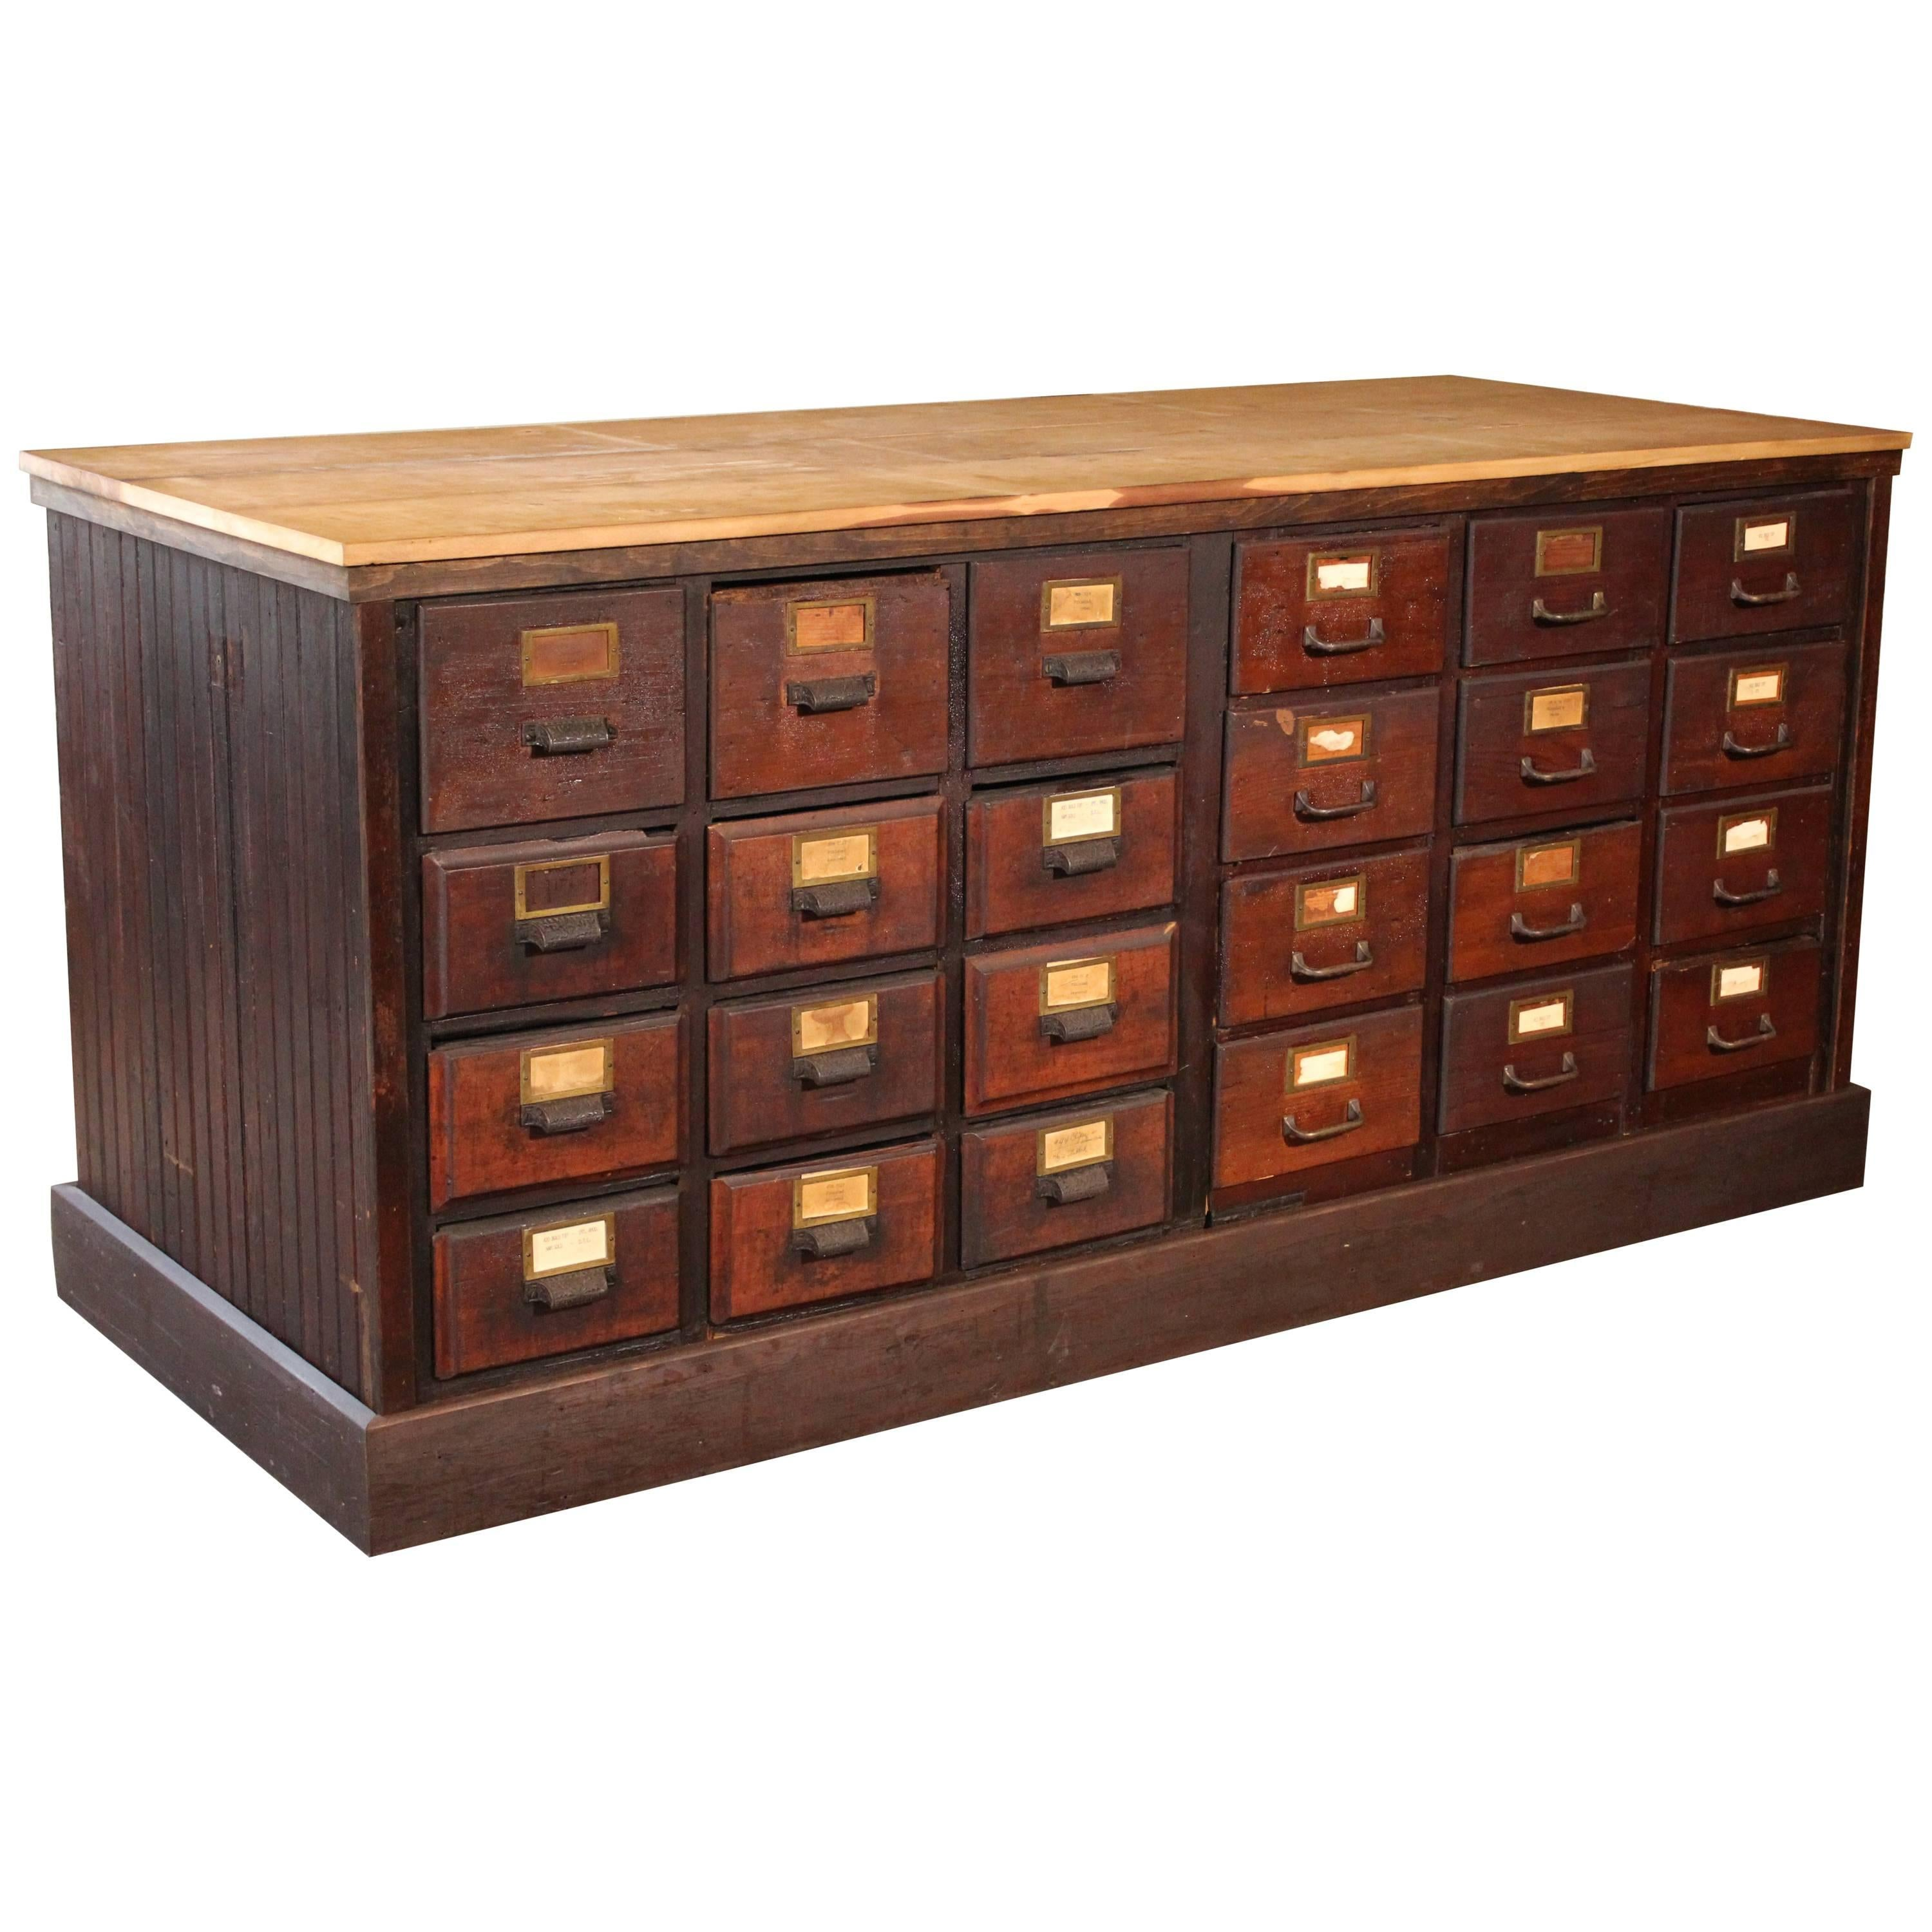 Charmant Apothecary Cabinet, Vintage Wooden Storage Store Counter Multi Drawer For  Sale